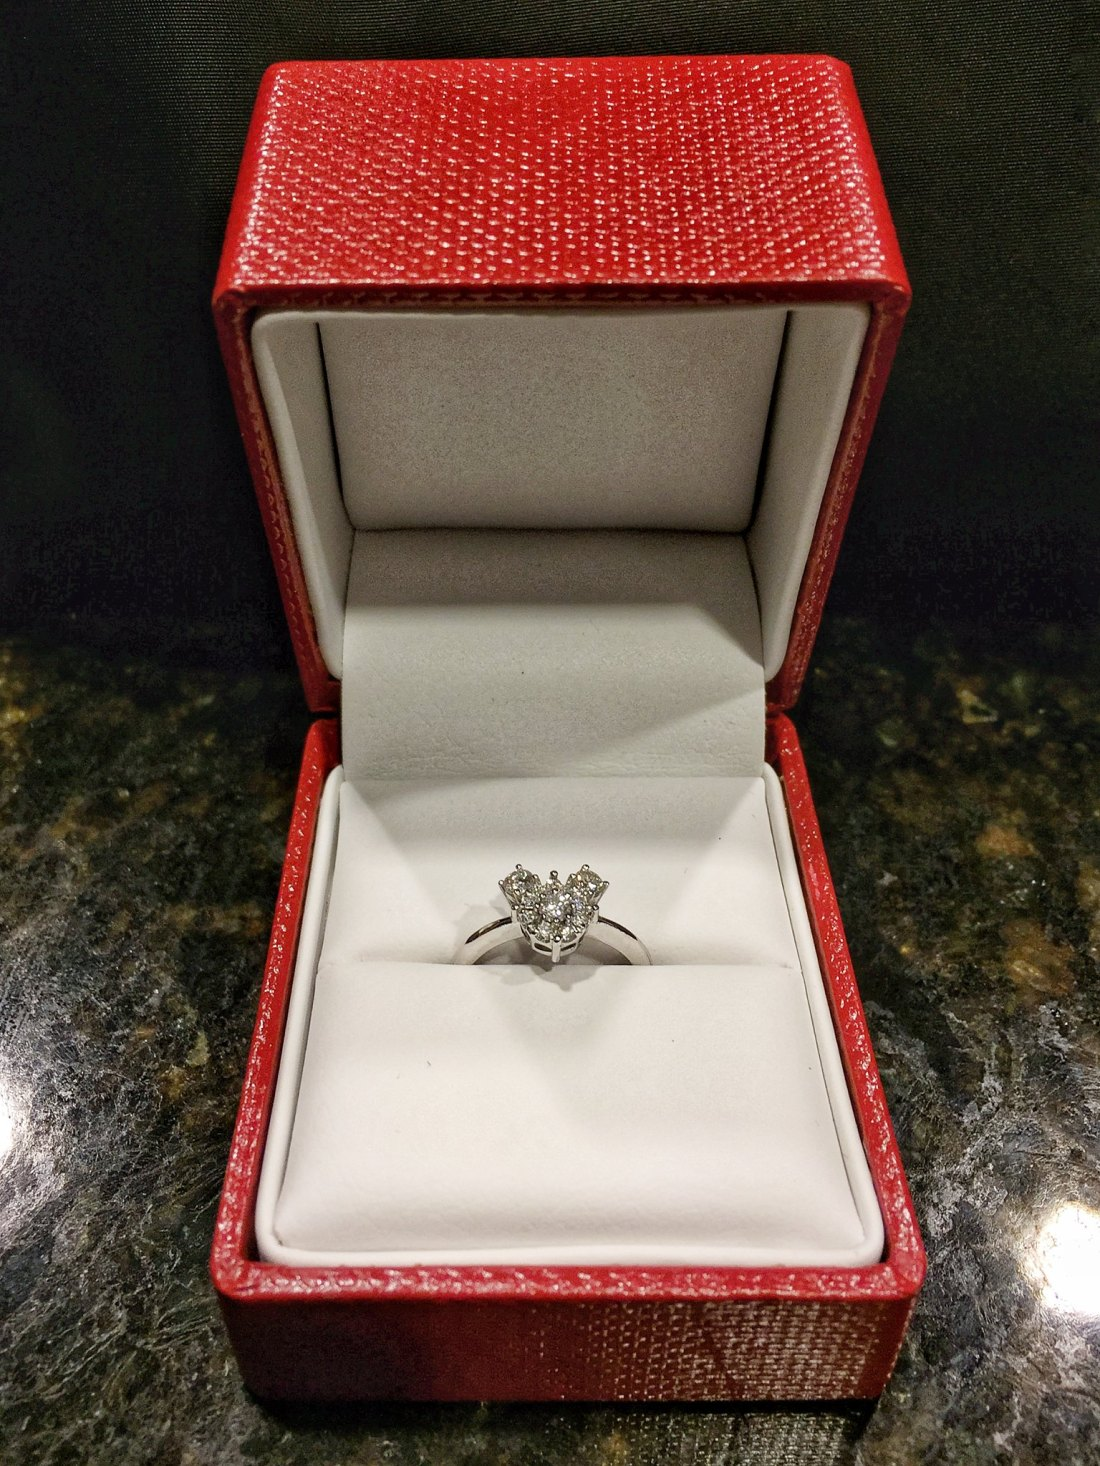 RACHEYwrites | Disney Mickey Mouse Wedding Ring